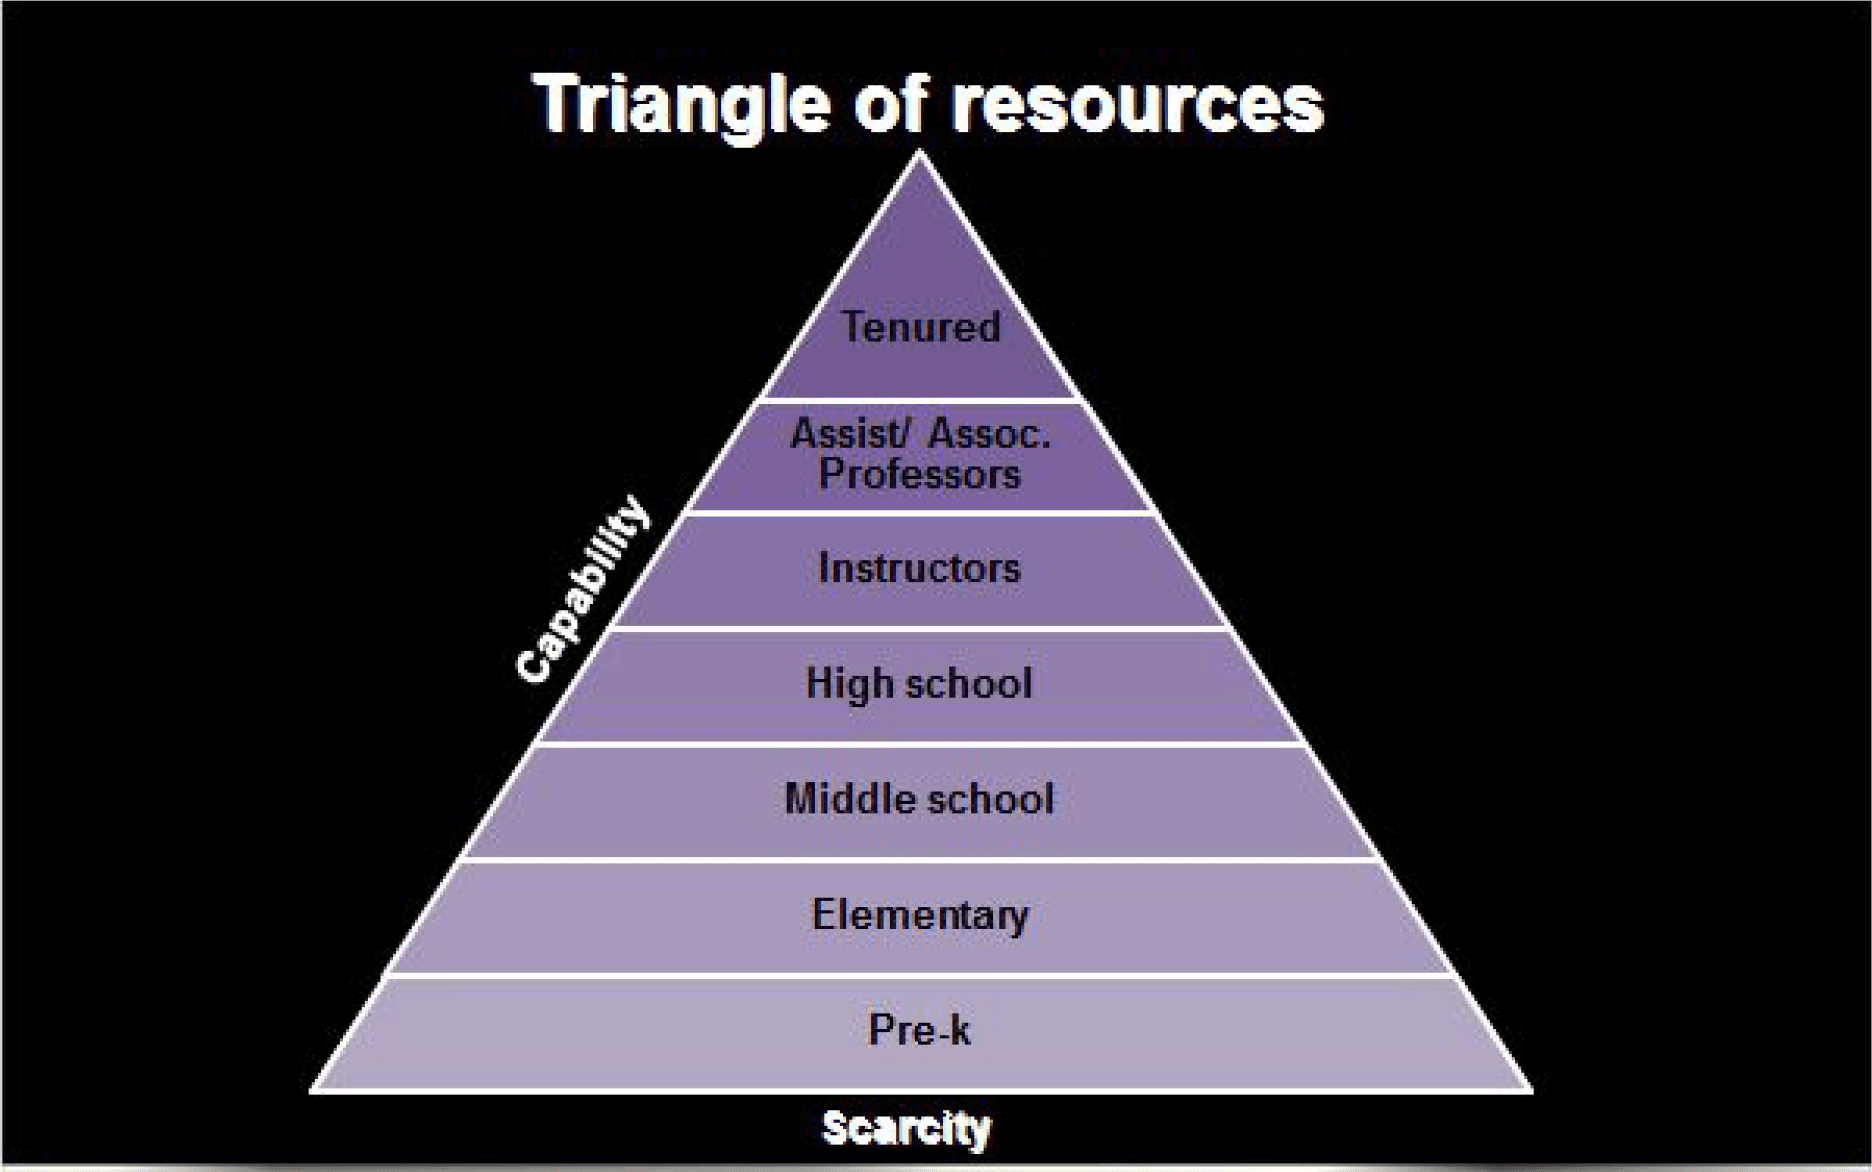 Florida Polytechnic University's Triangle of Resources Diagram